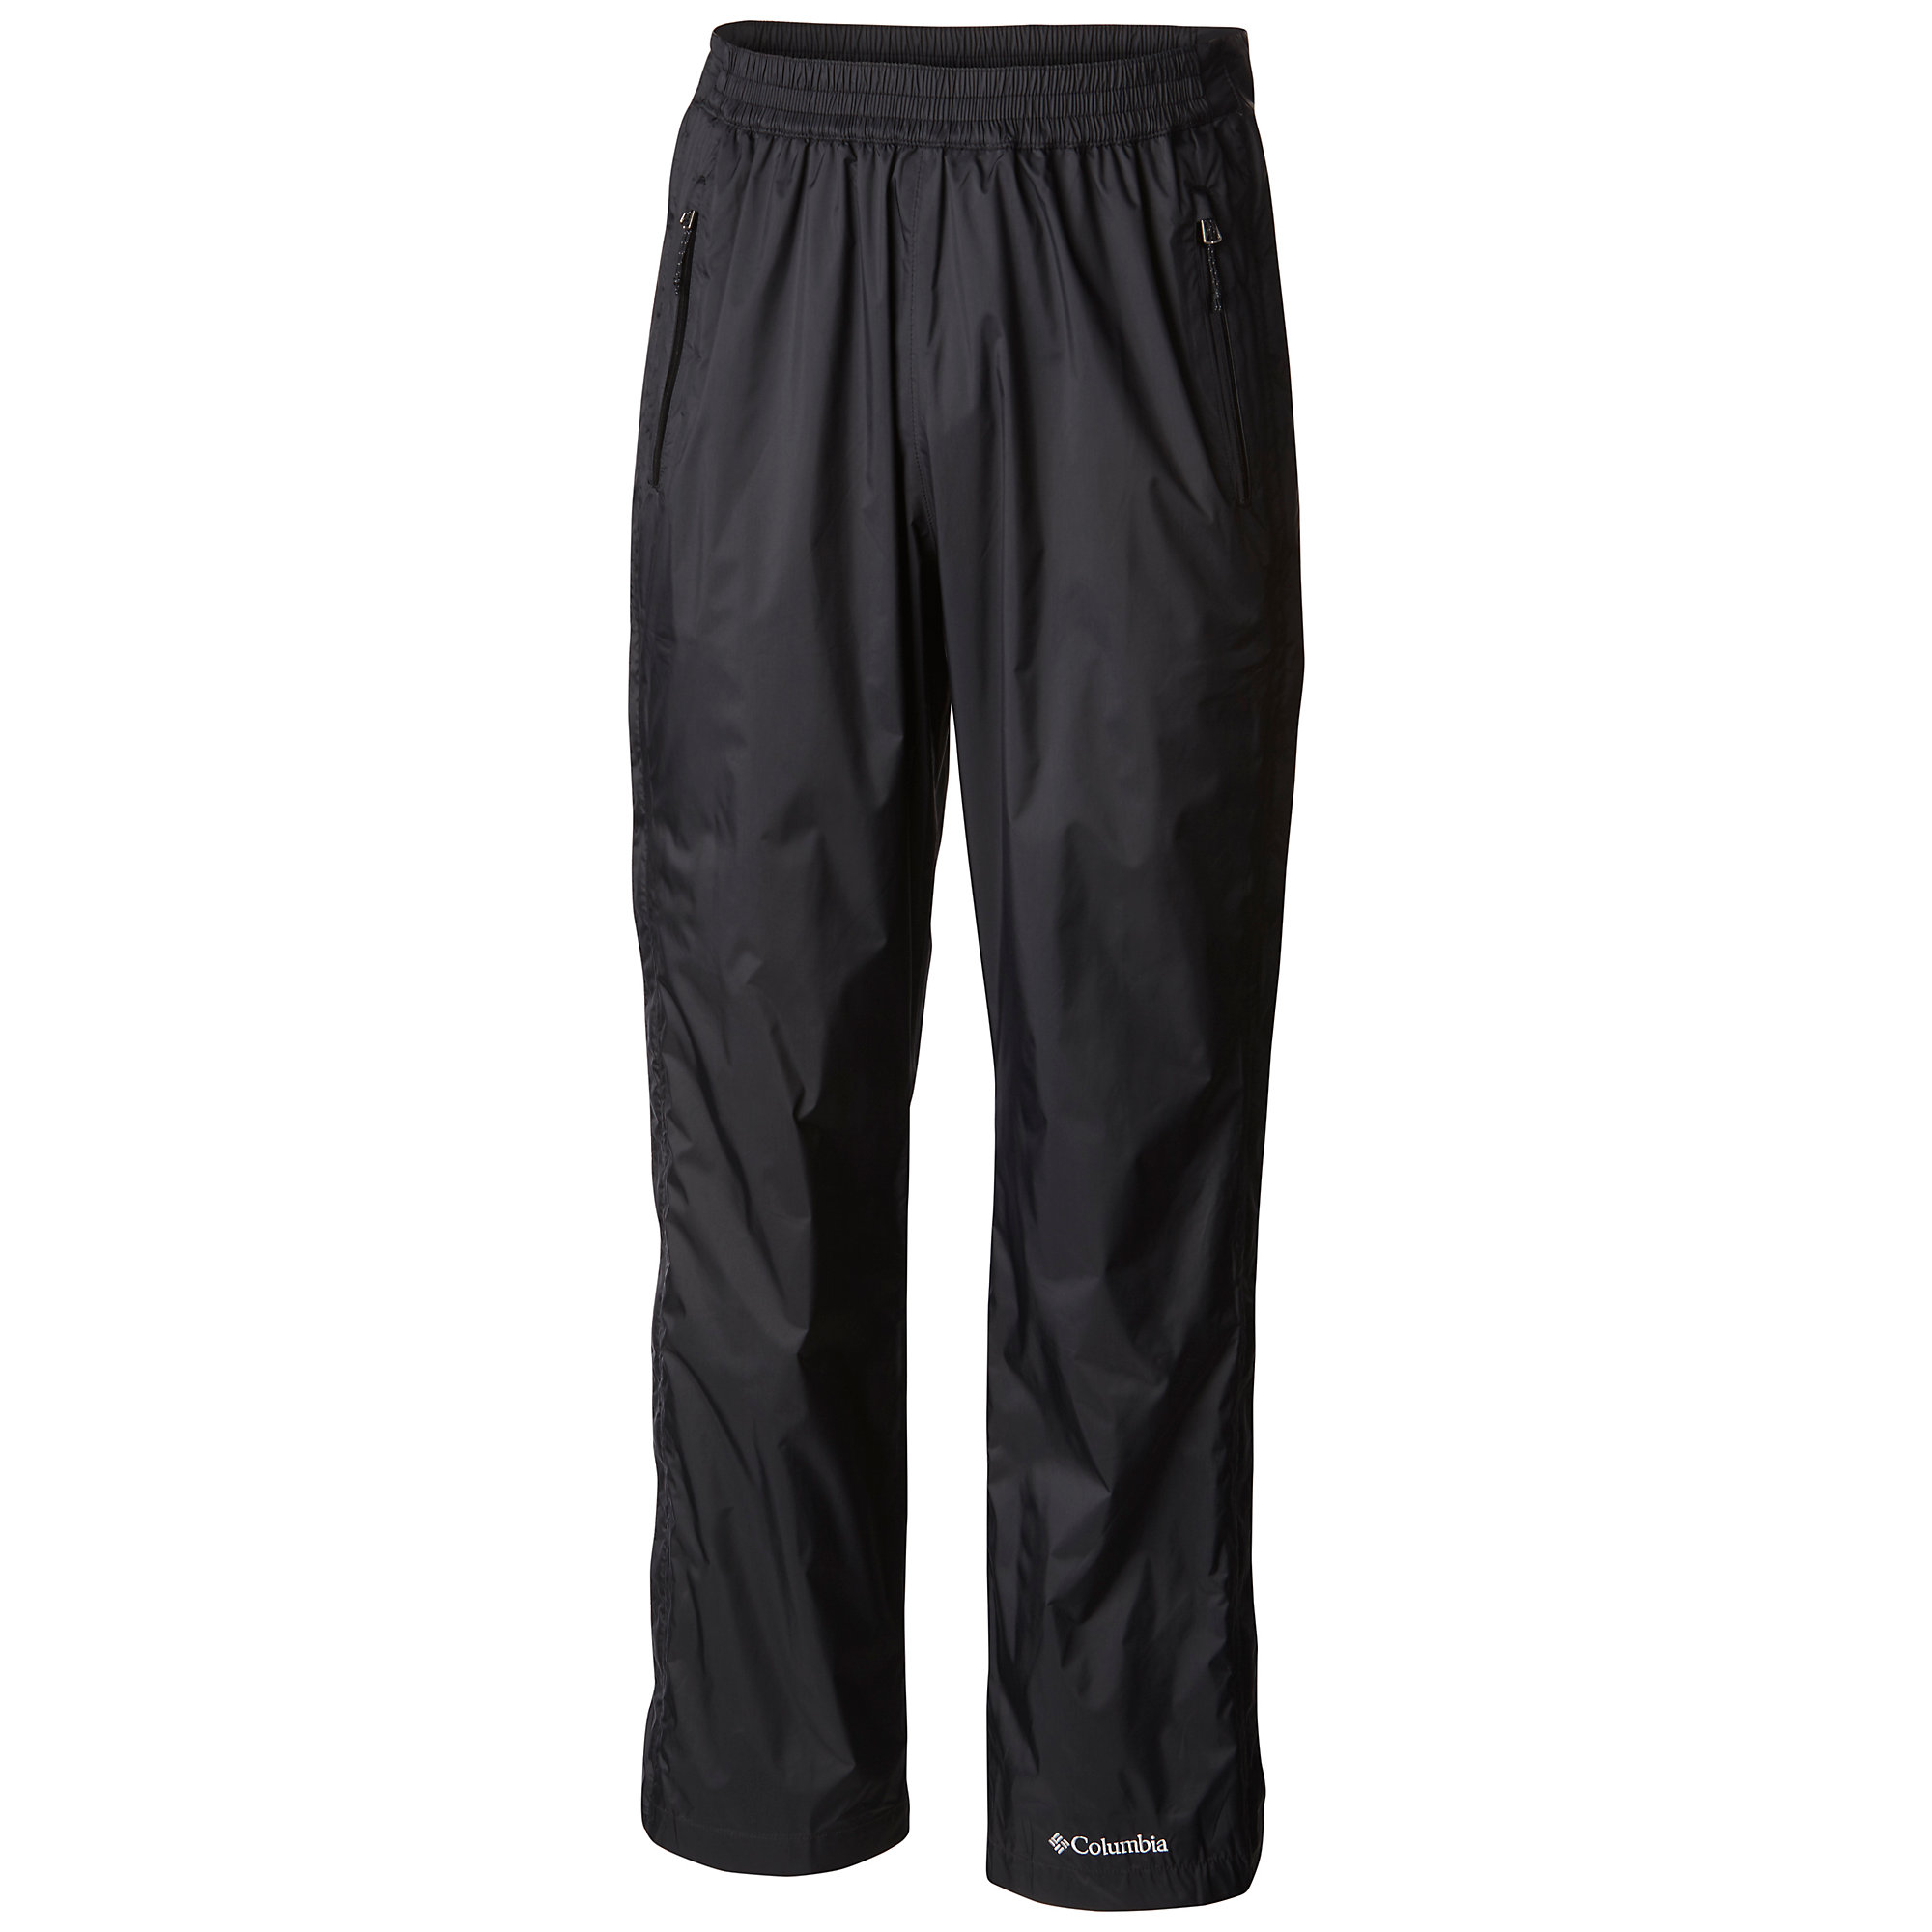 Columbia EvaPOURation Pant